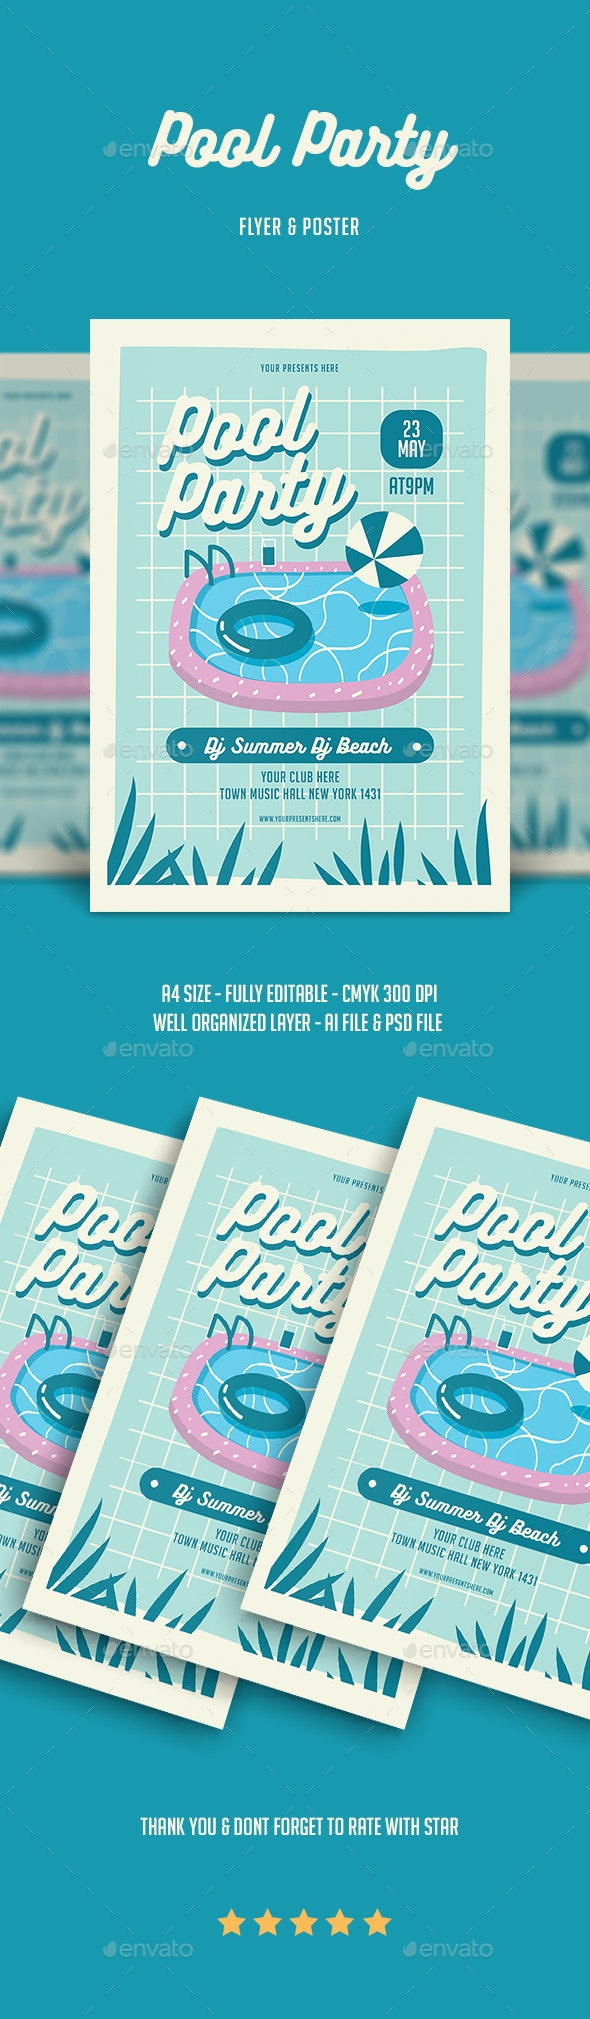 Pool Party Flyer - Flyers Print Templates